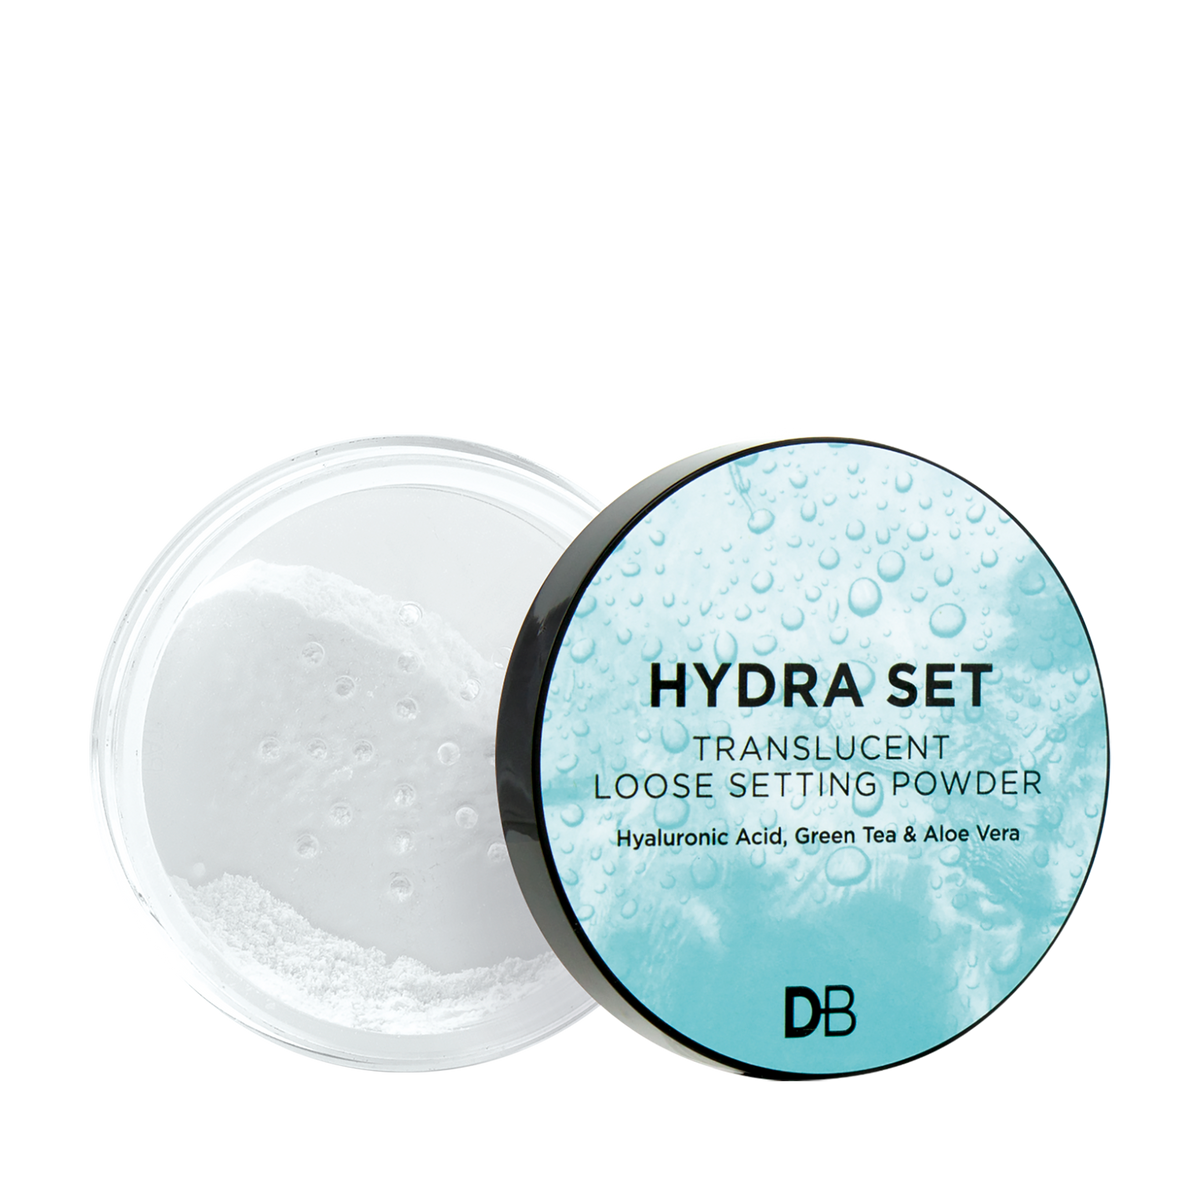 Hydra Set Translucent Loose Setting Powder